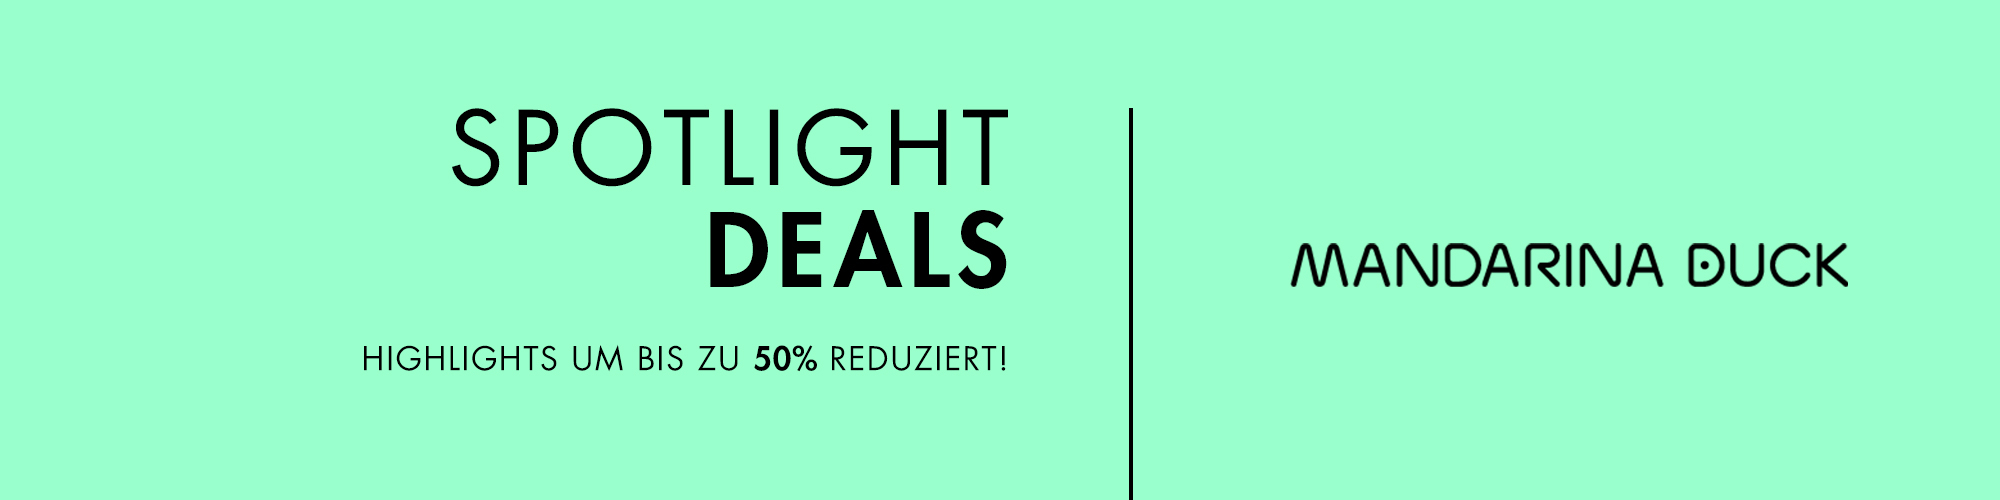 Spotlight Deals